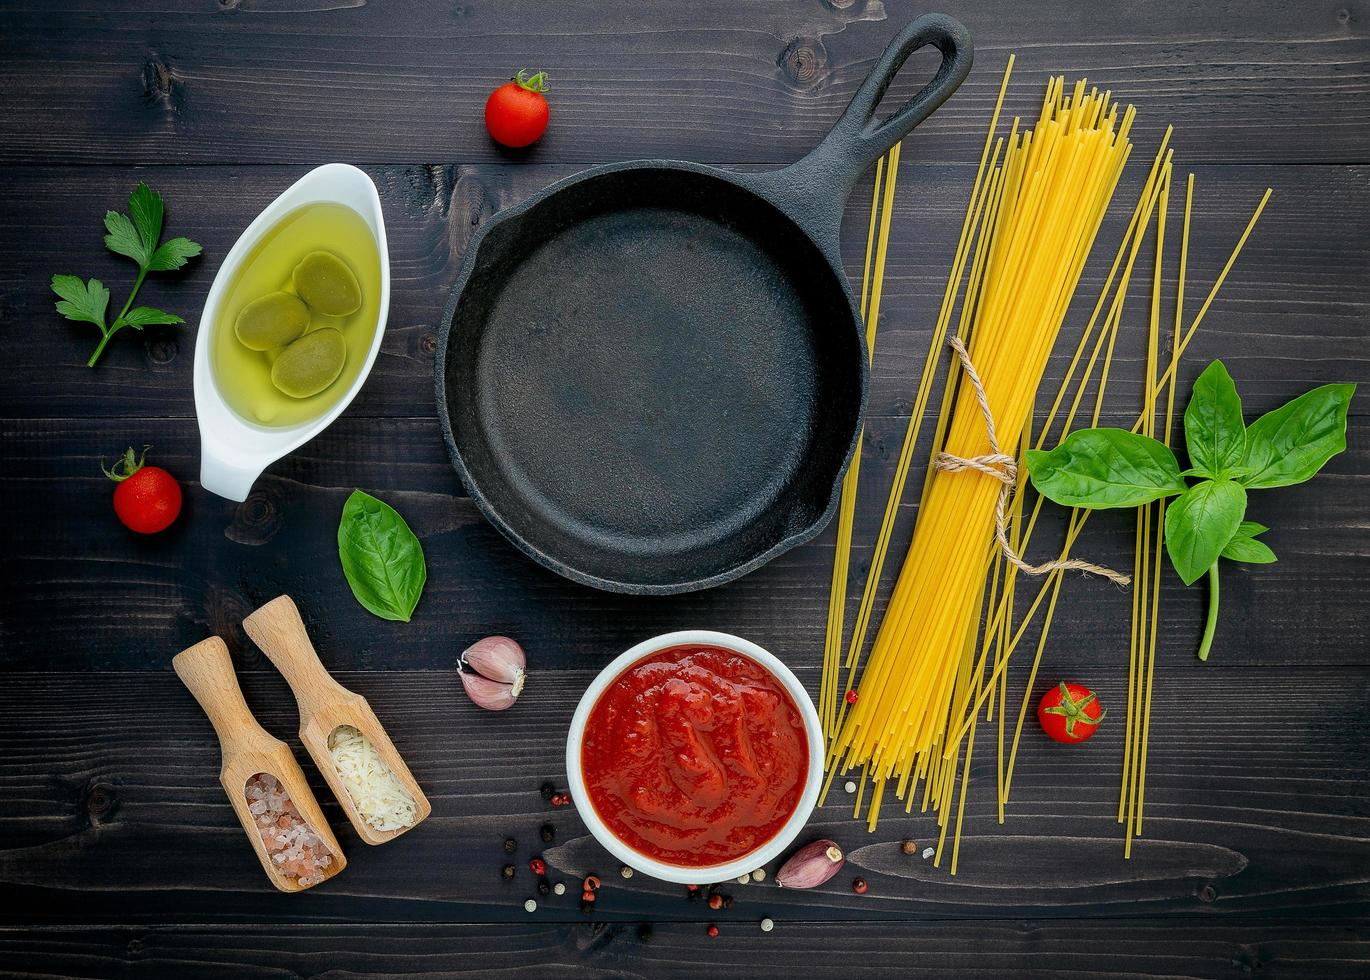 Frying pan with spaghetti ingredients photo